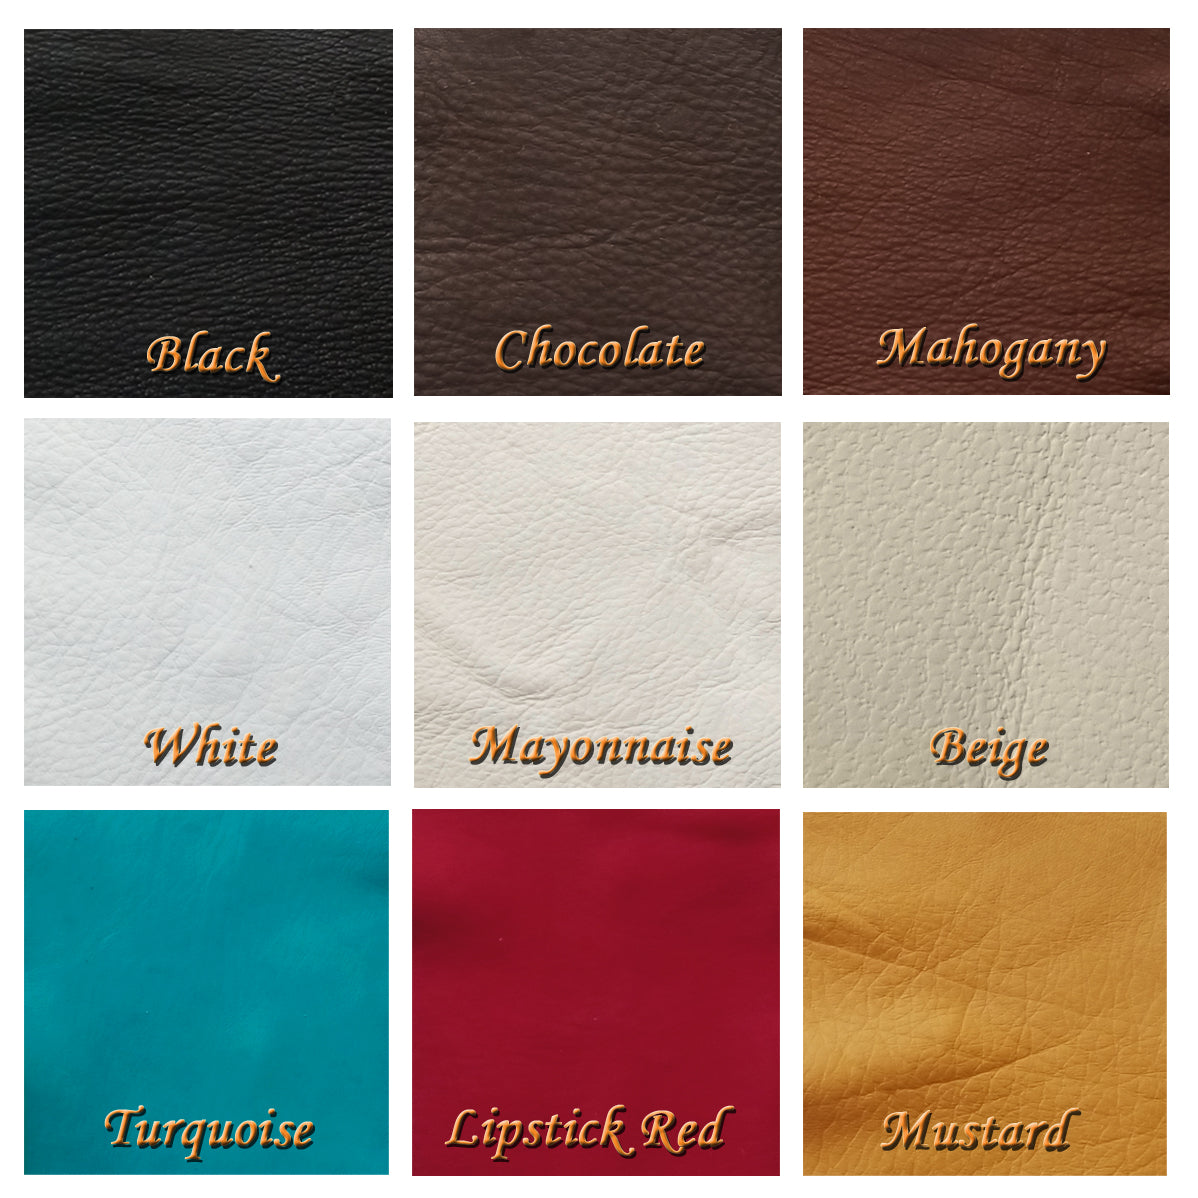 deerskin leather cuttings - leather color options